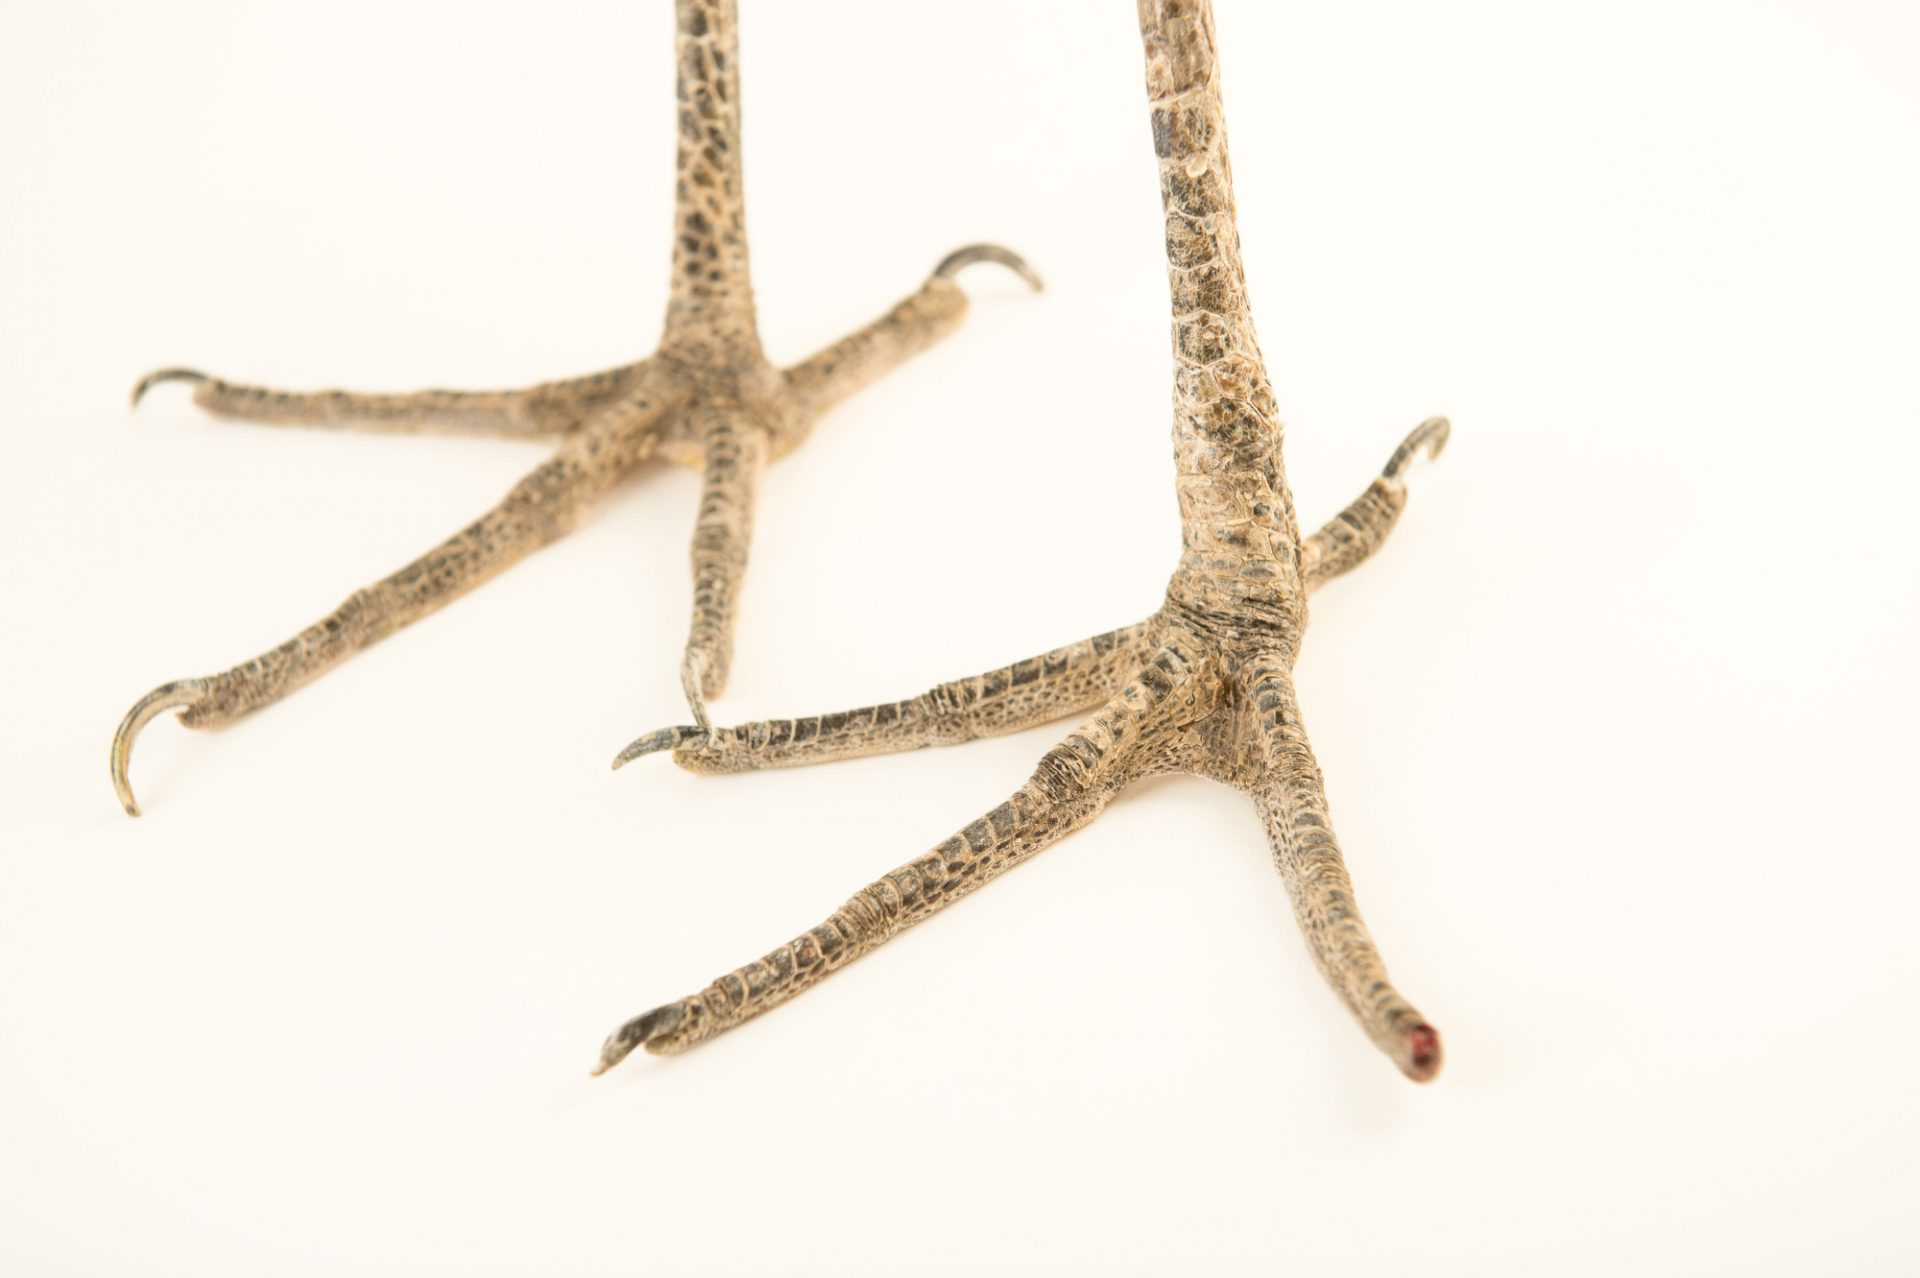 Picture of the feet of a great blue heron (Ardea herodias occidentalis) at the National Aviary breeding center.